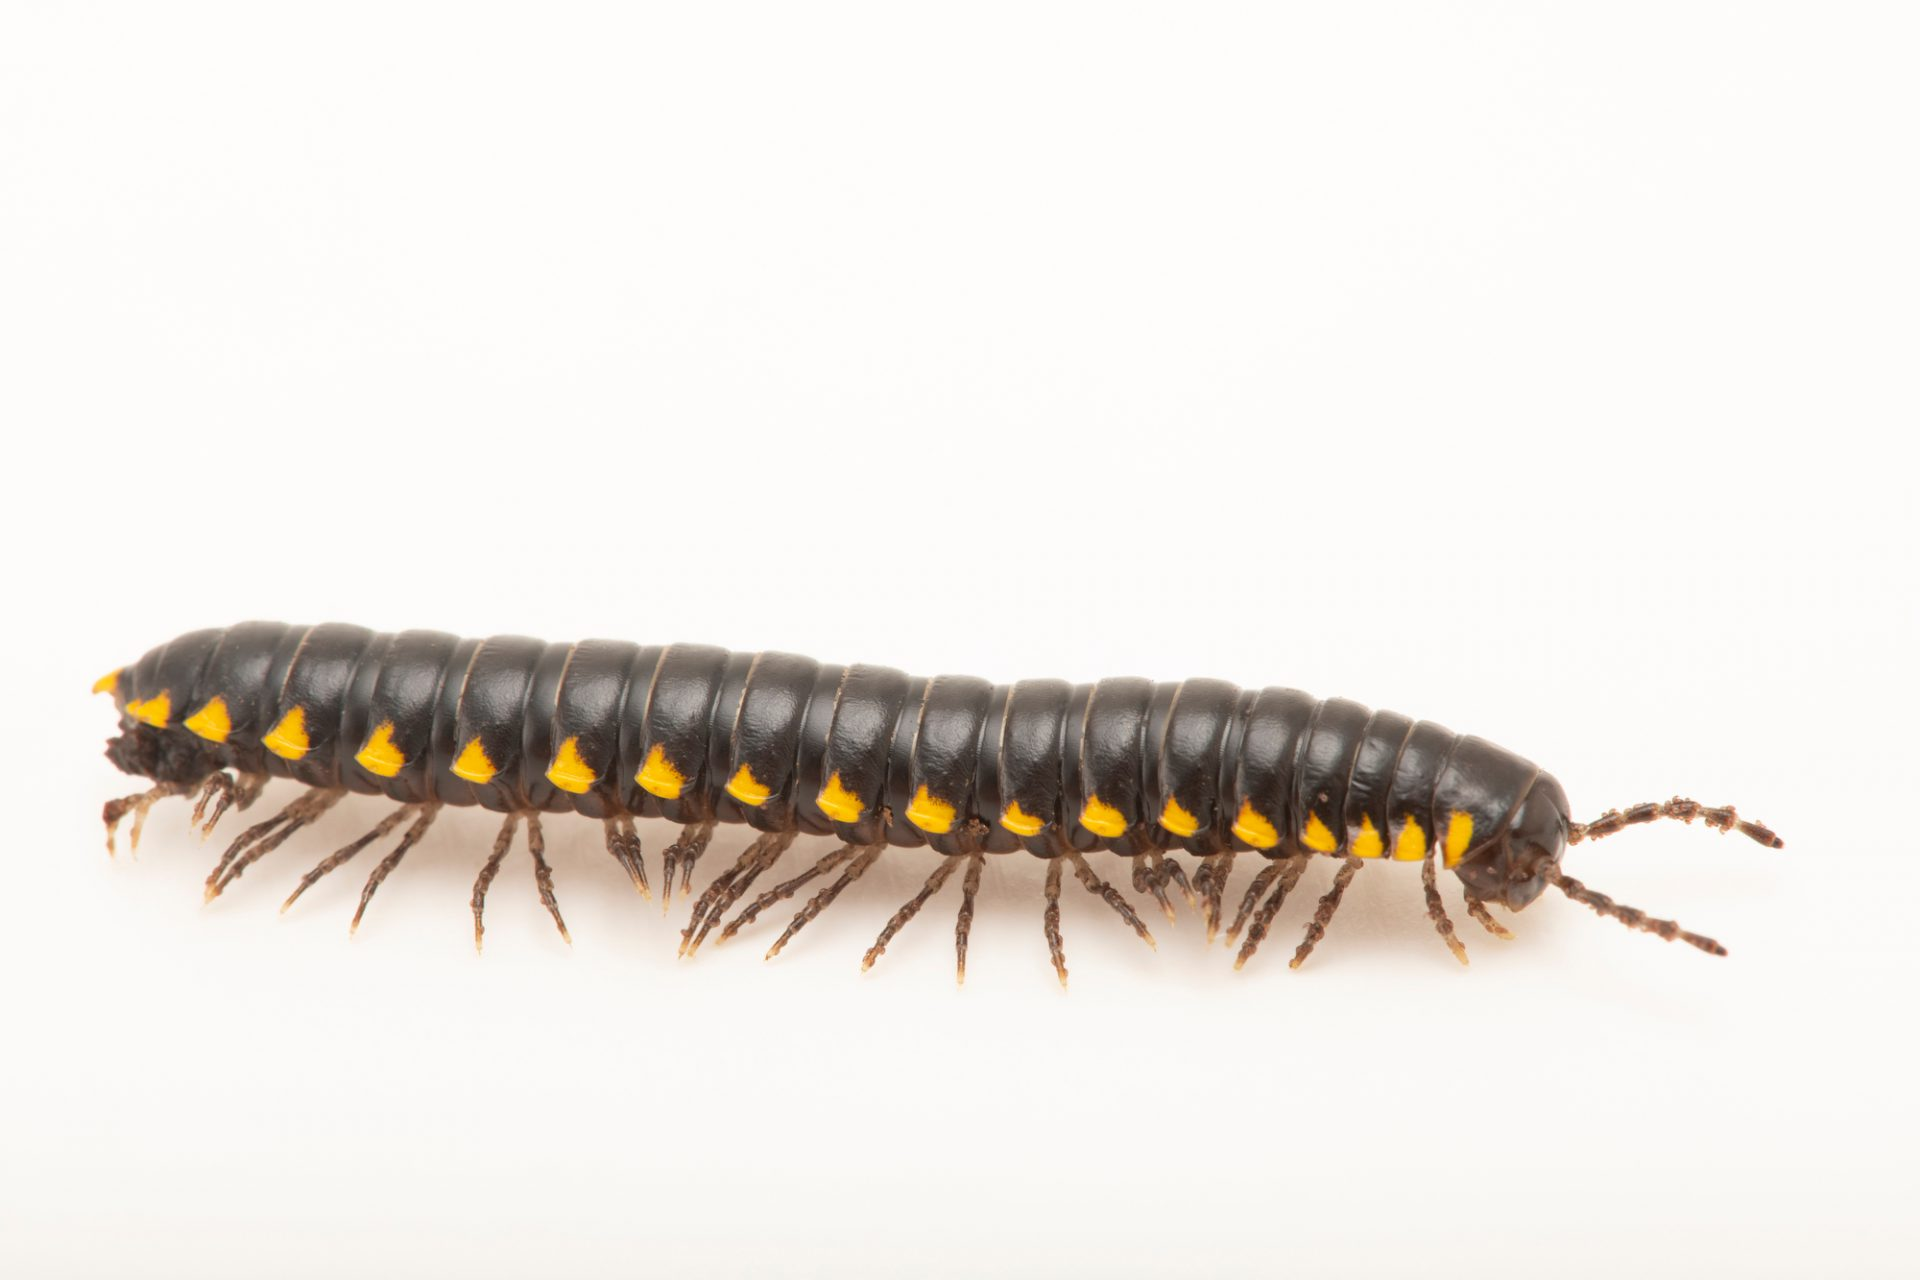 Photo: Yellow-spotted millipede (Harpaphe haydeniana) at the Woodland Park Zoo.